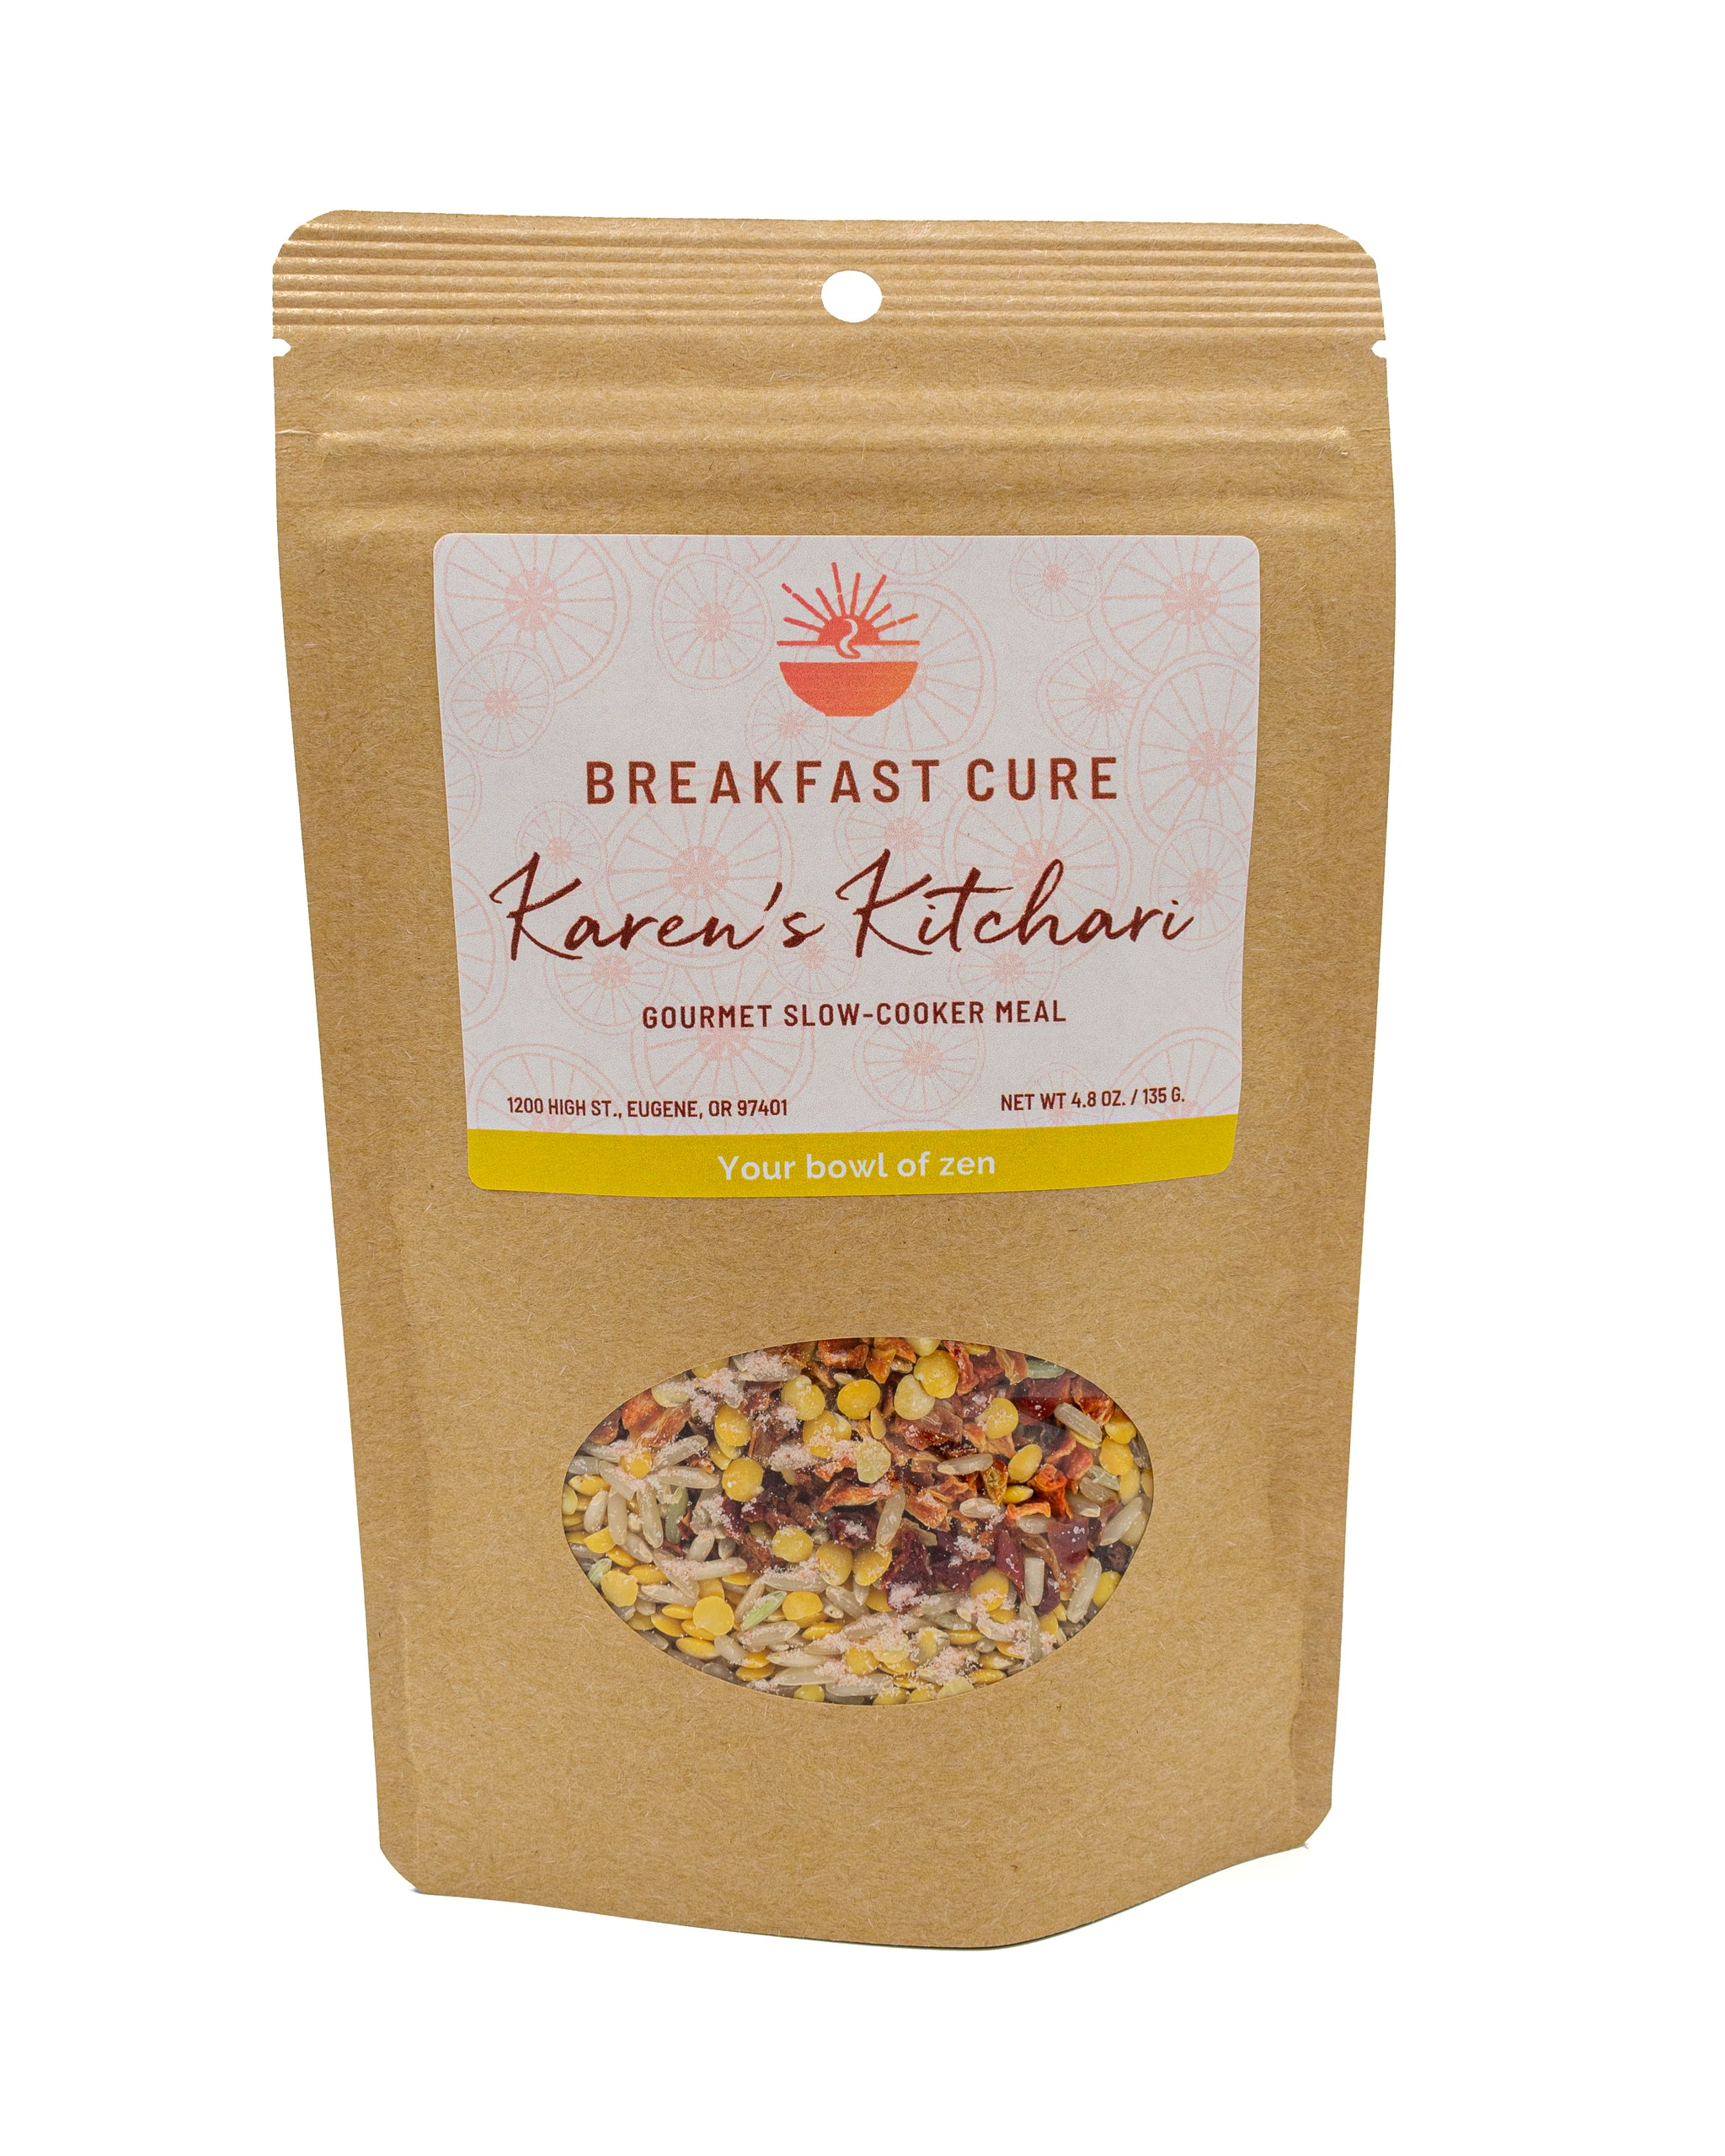 Breakfast Cure® Congee - 3pack - Choose your flavor combo